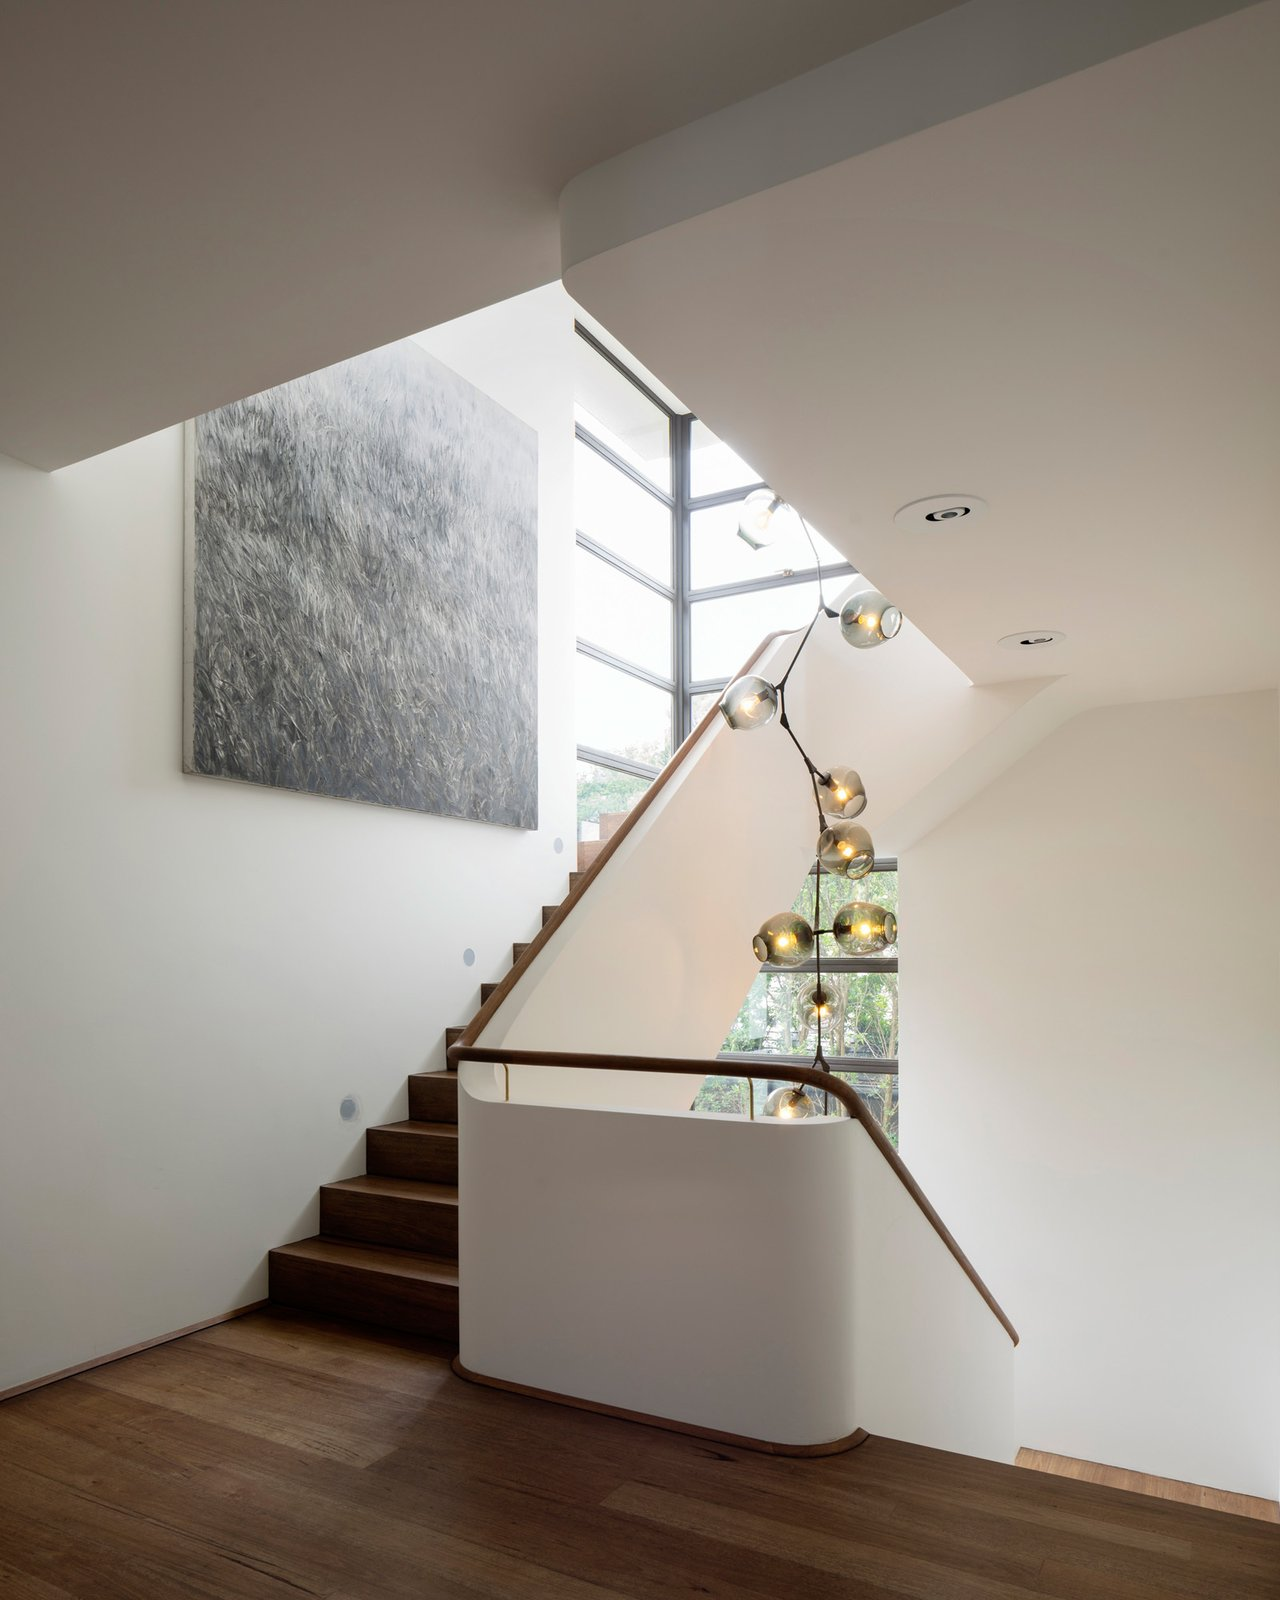 The seven metre tall Lindsey Adelman chandelier dominates the stairwell. Light projectors, concealed in the suspended ceiling, illuminate the artwork. www.lindseyadelman.com © Justin Alexander